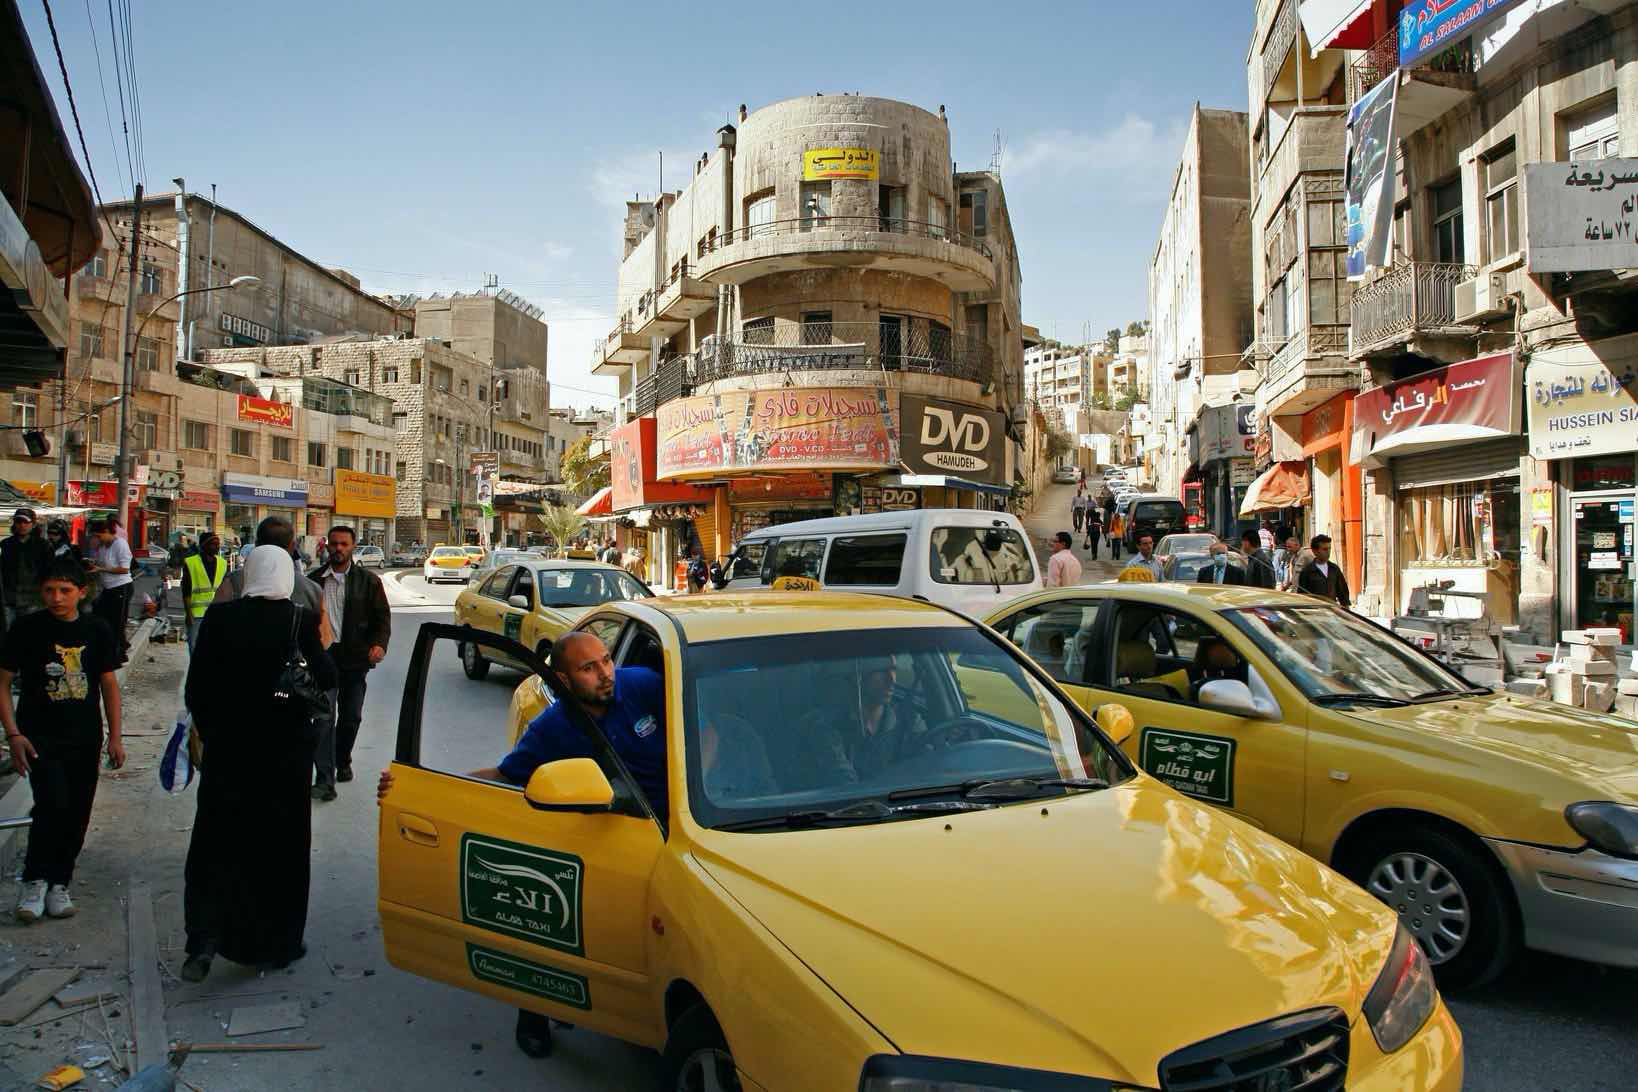 A busy intersection in downtown Amman, Jordan's capital and political center.